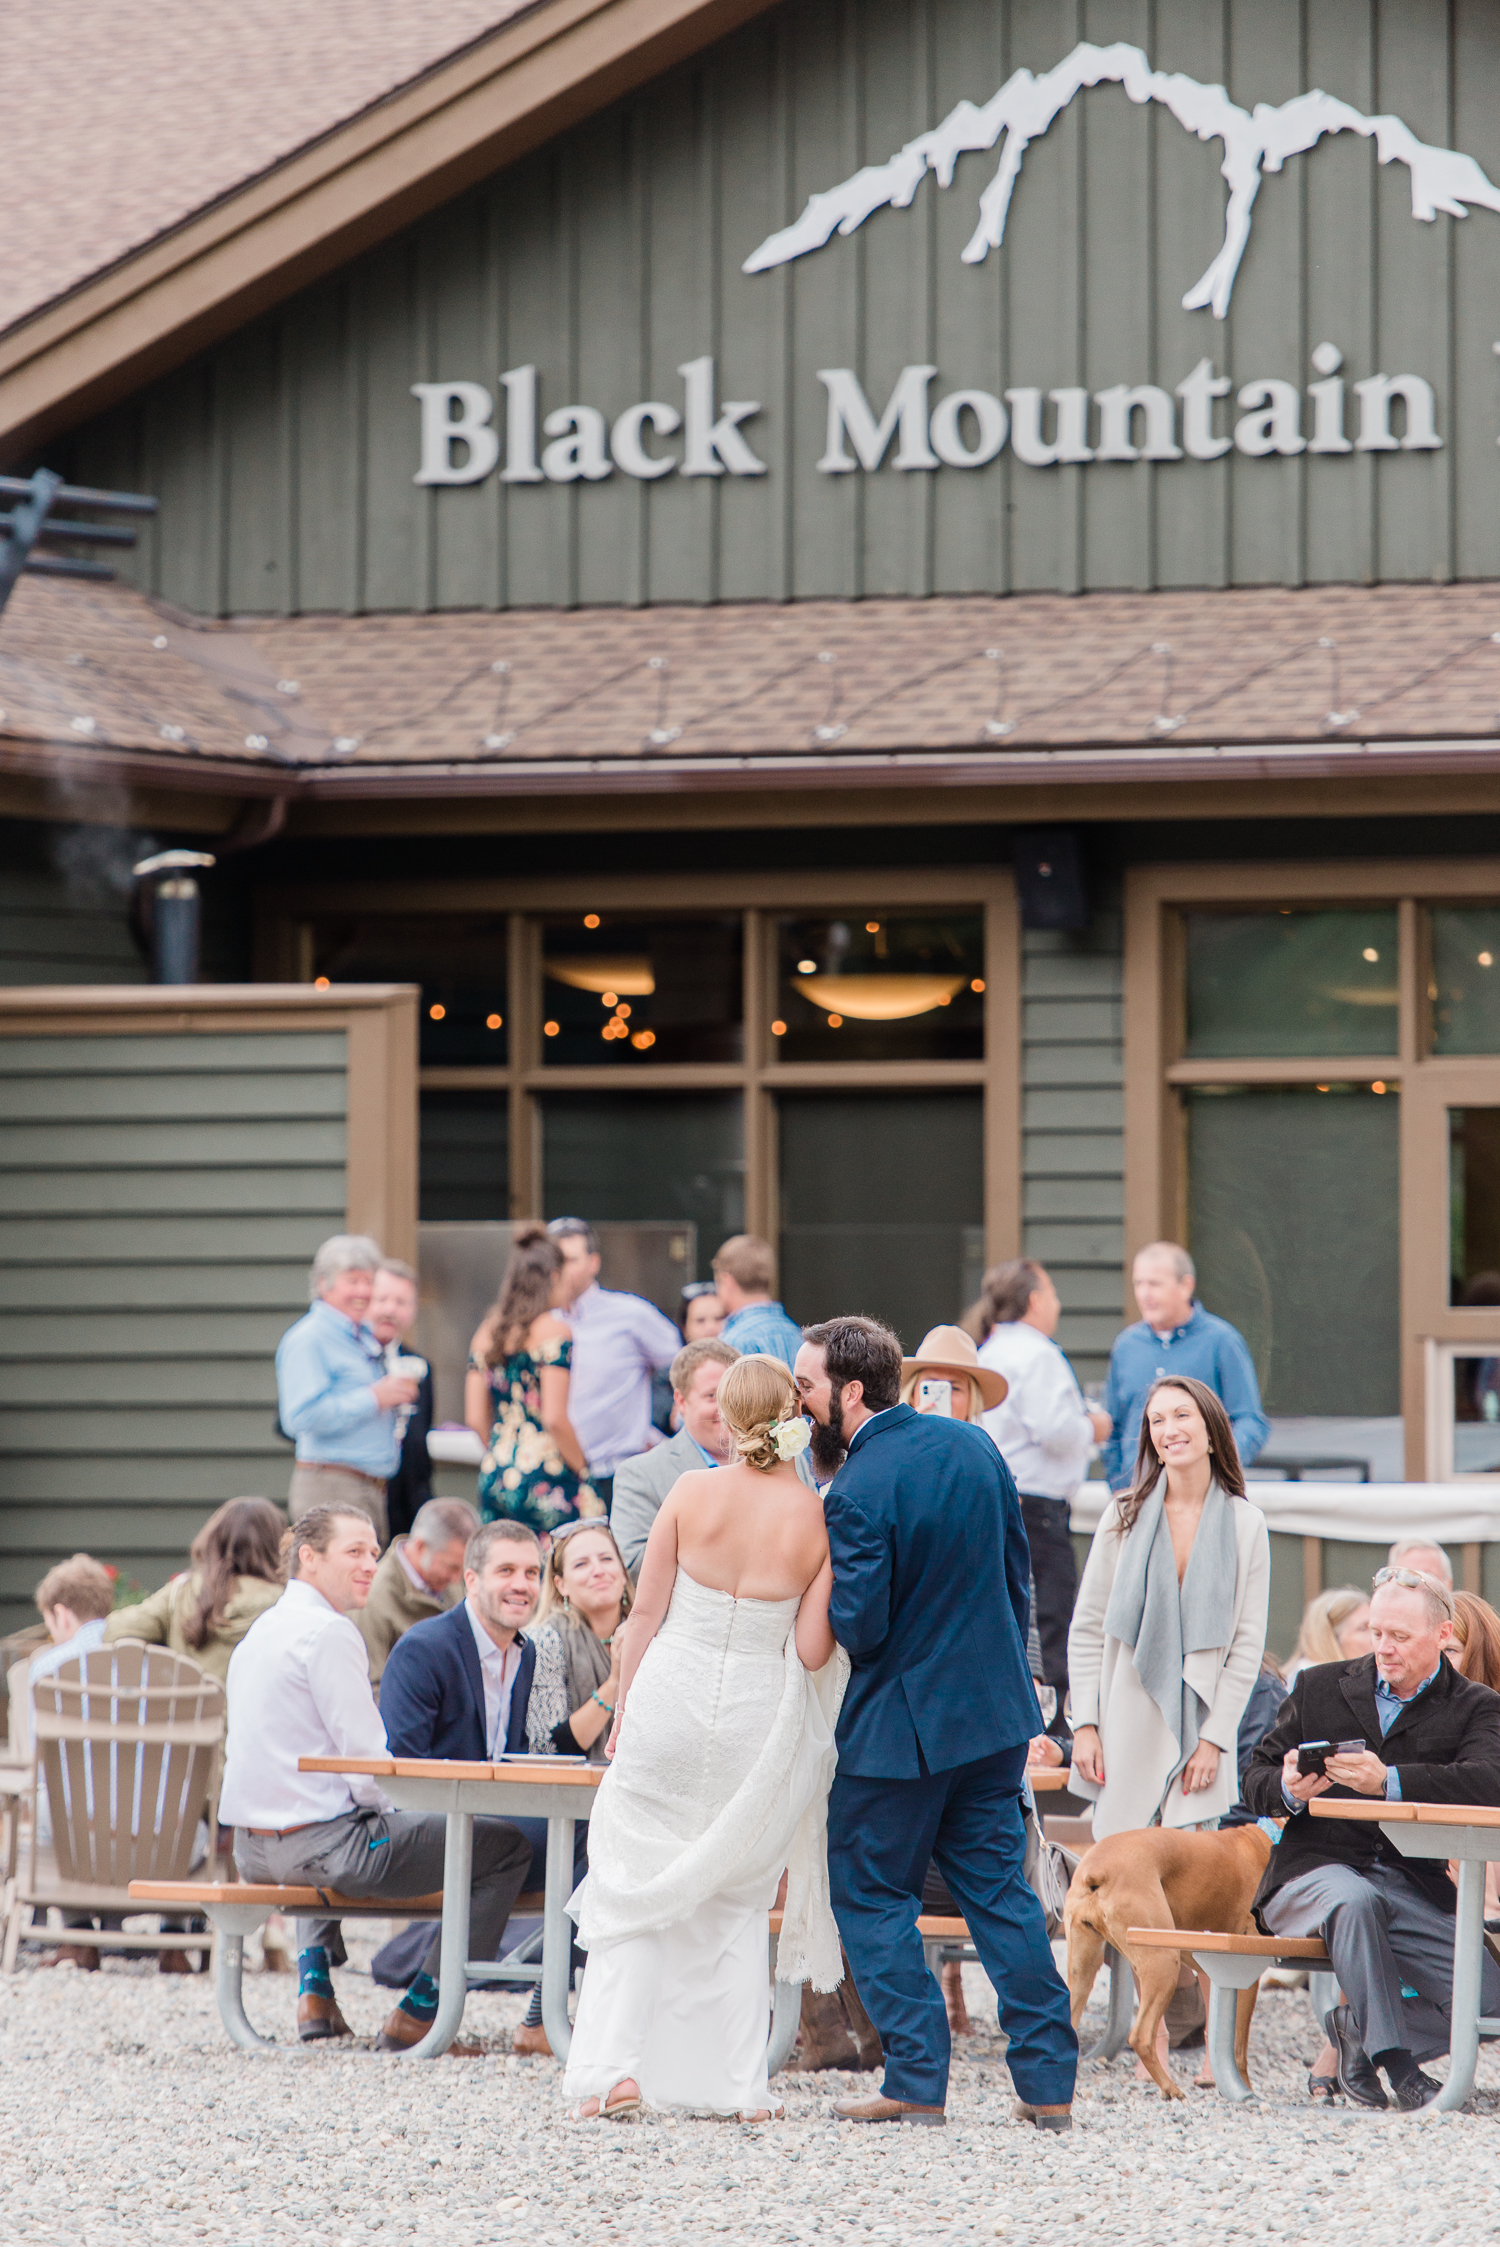 Ashleigh Miller Wedding Photographer captured a summer high alpine mountain wedding at Arapahoe Basin at Black Mountain Lodge in the Colorado mountains. This wedding was filled with dogs, wildflowers, love, mountains and joy!